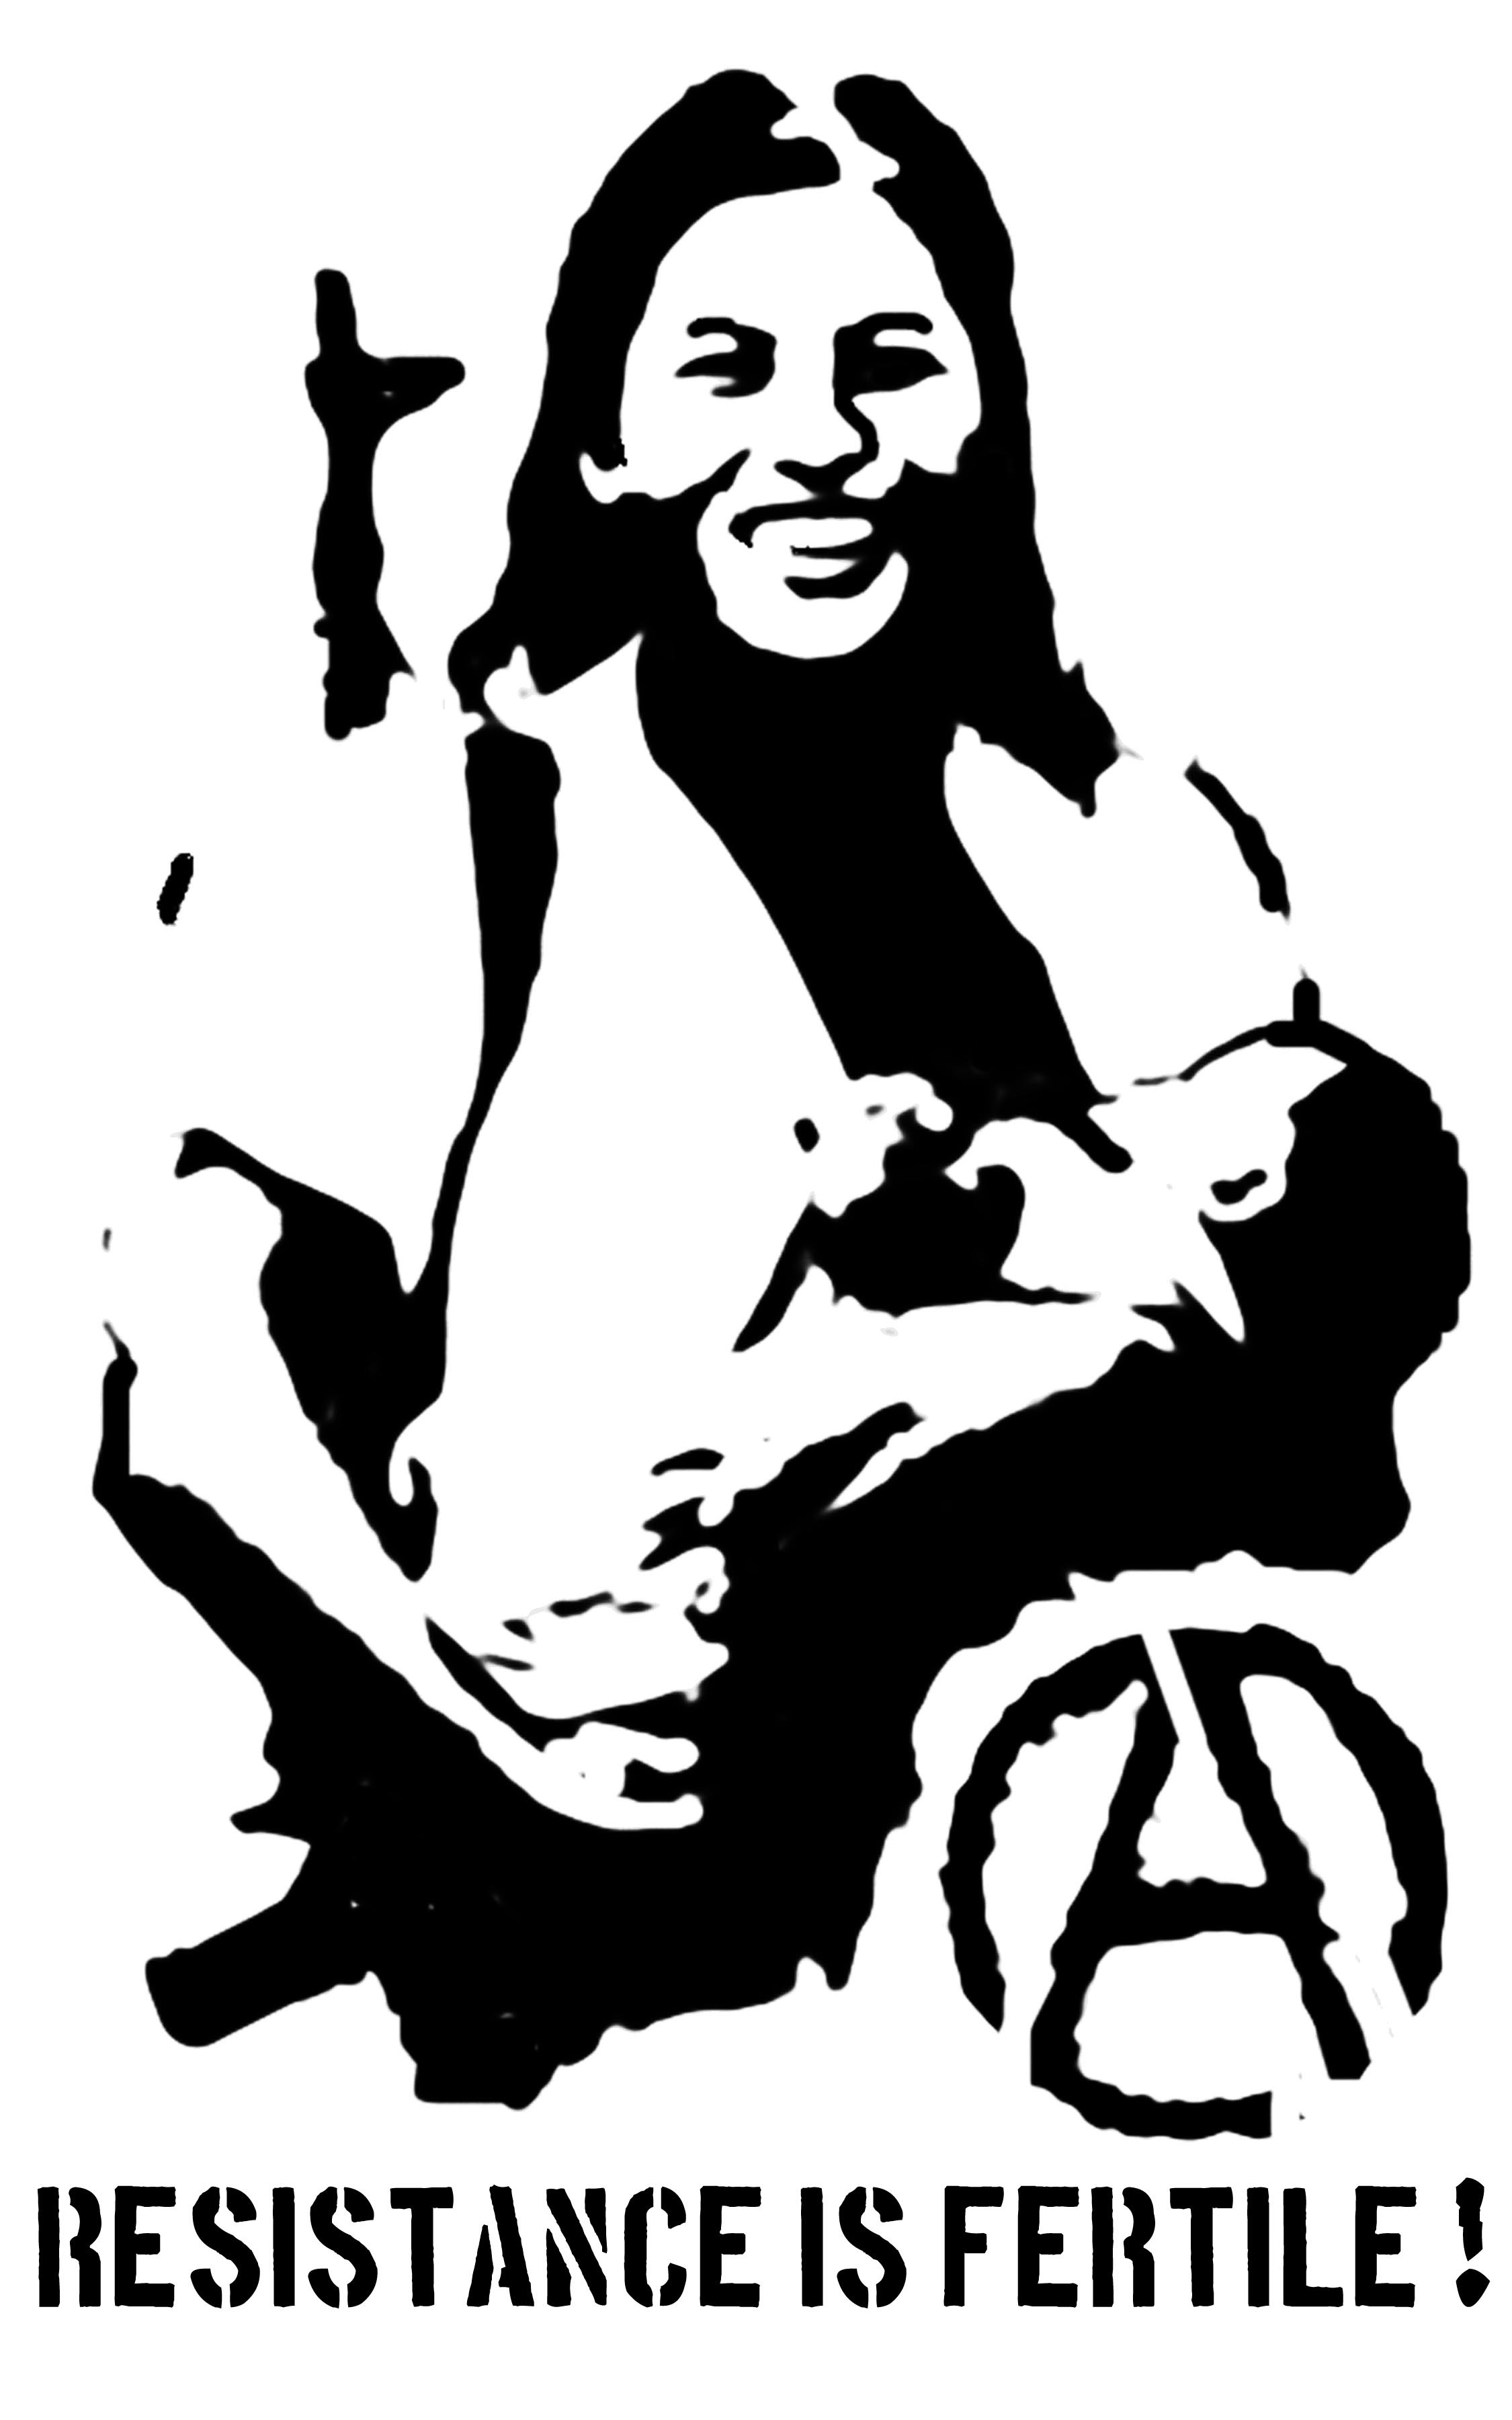 Untitled, by Radical Graphics ~ Anarchist graphics, revolutionary.